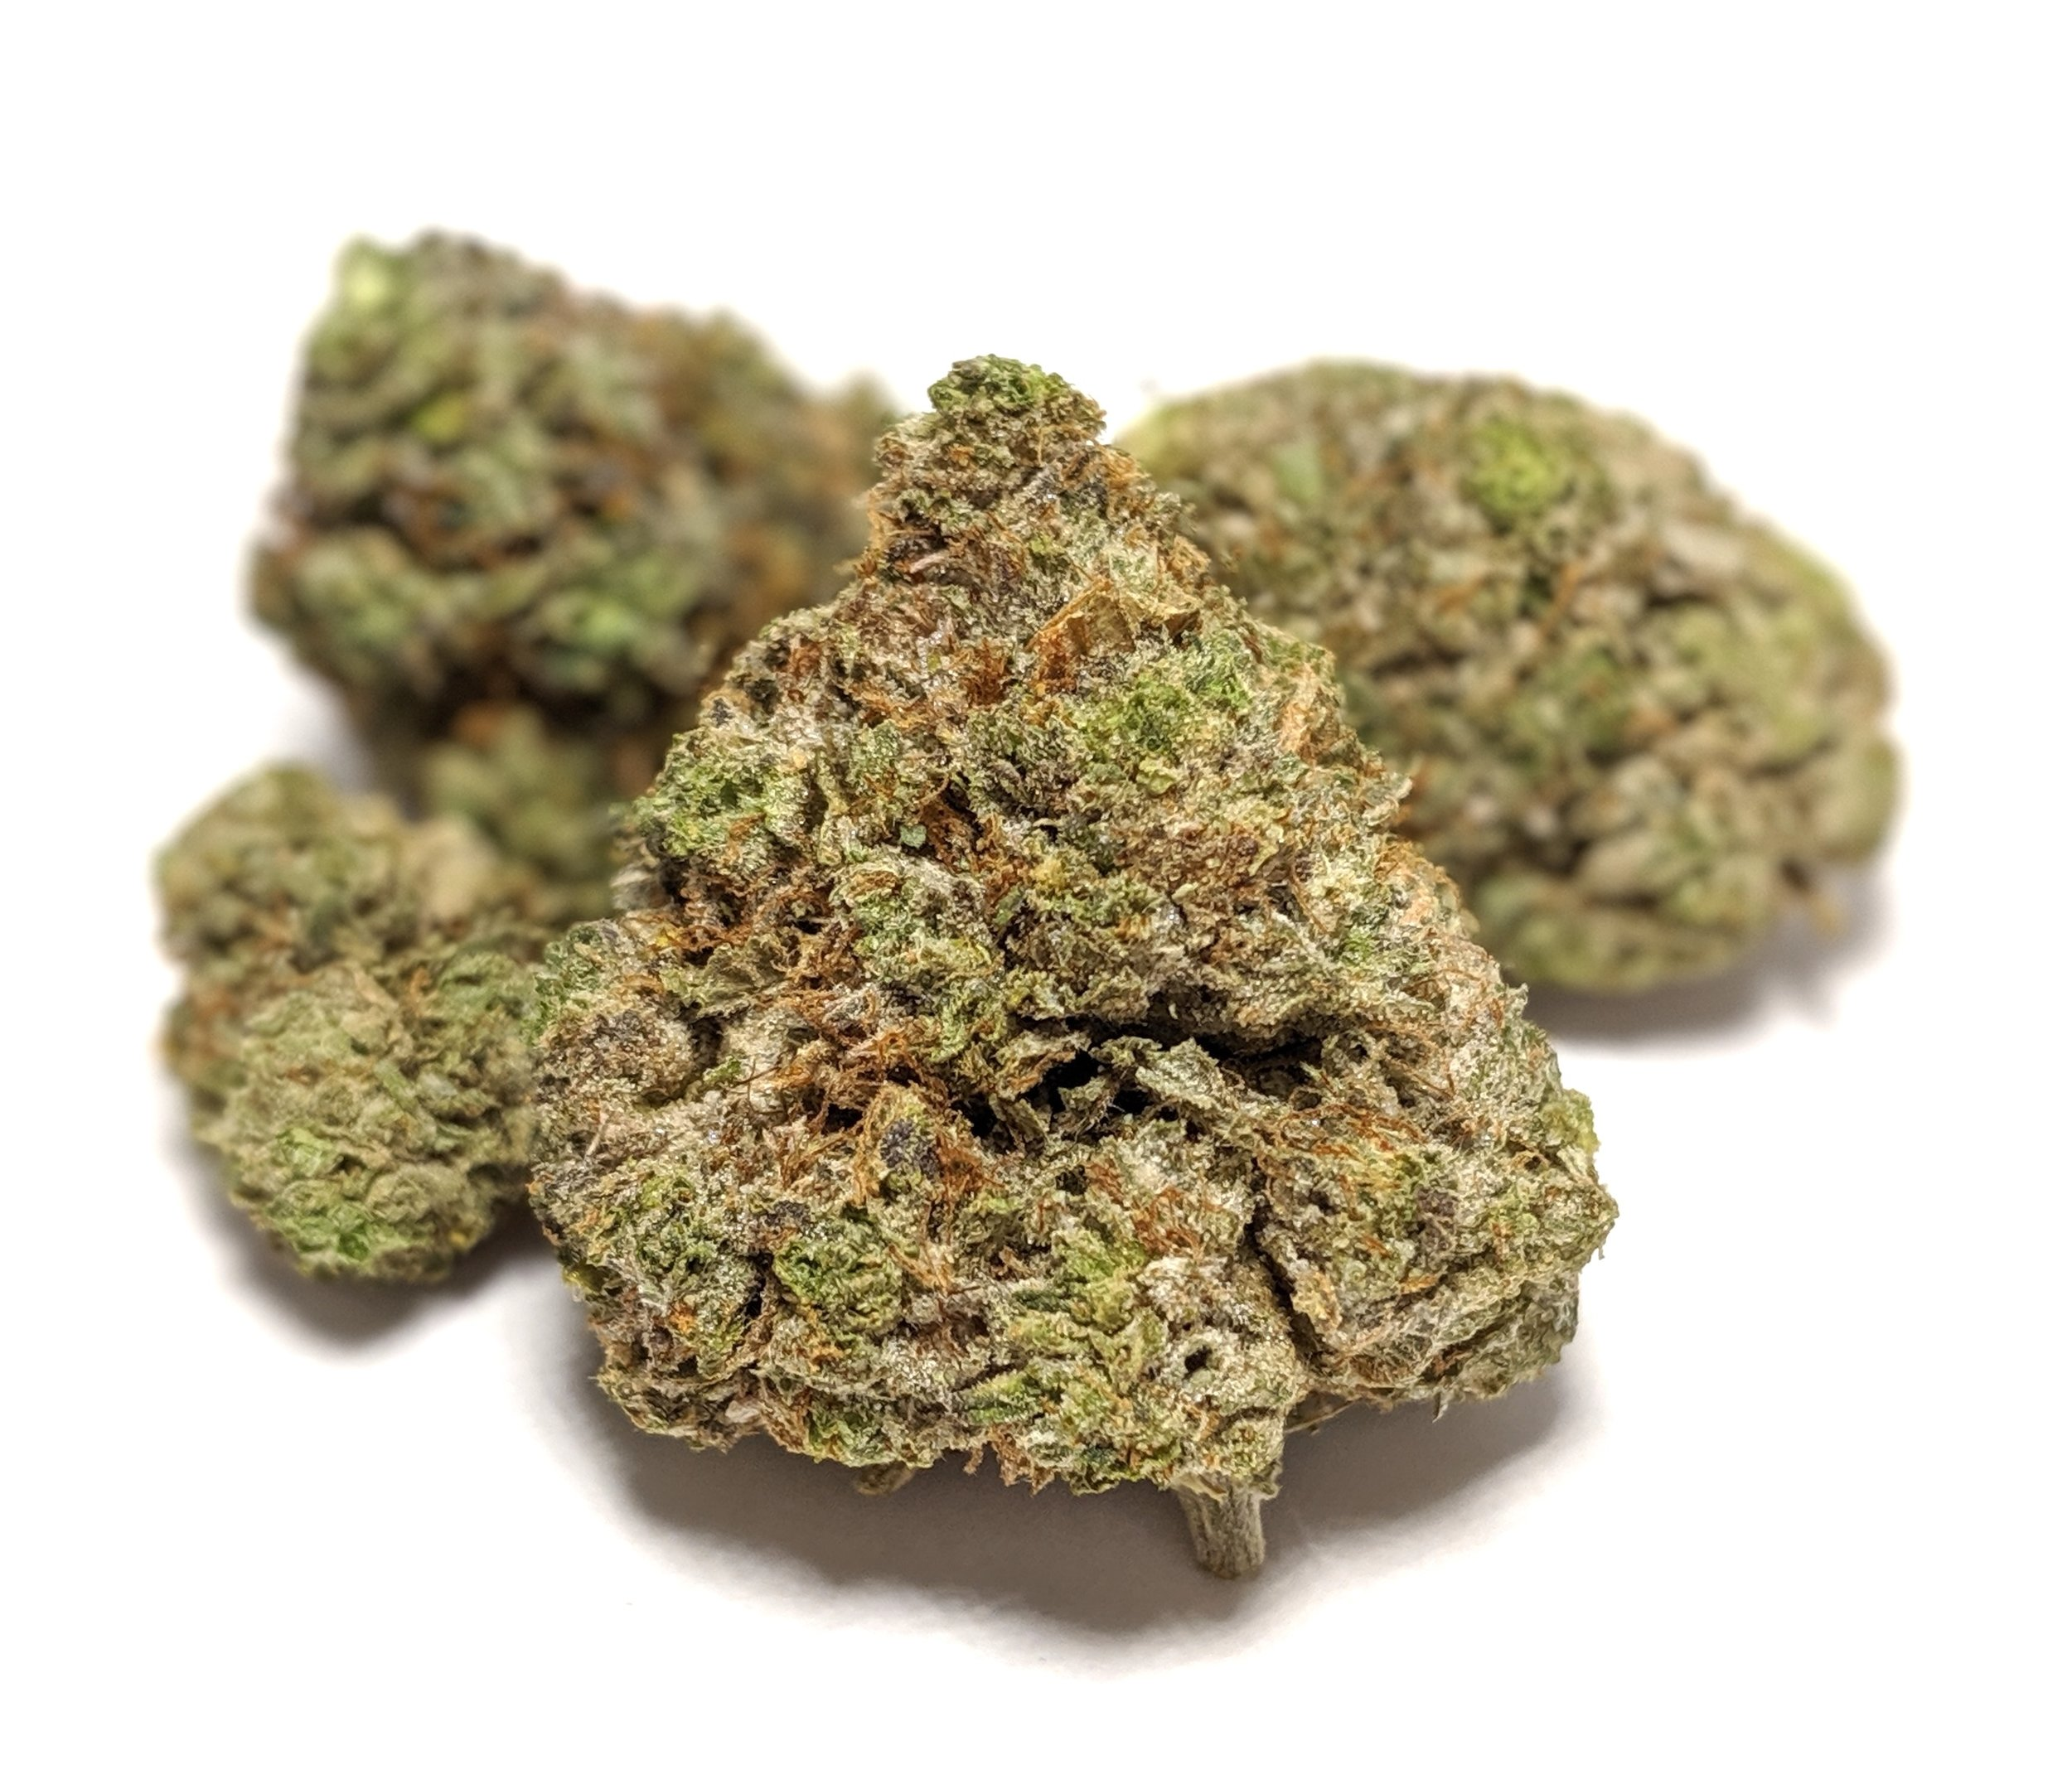 Pink Gas - Indica    1/4- $70 1/2-$120 OZ-$220   Pink Gas is the perfect strain for all indica lovers. A cross between Bubba Kush and a Pink Kush variant, this strain received its name for its diesel-like aroma and flavour profile. The indica-high provides users with a relaxing and sedating high that is great for treating insomnia and pain. Pink Gas boasts a higher than average THC concentration of 24% and is sure to keep you couch-locked.